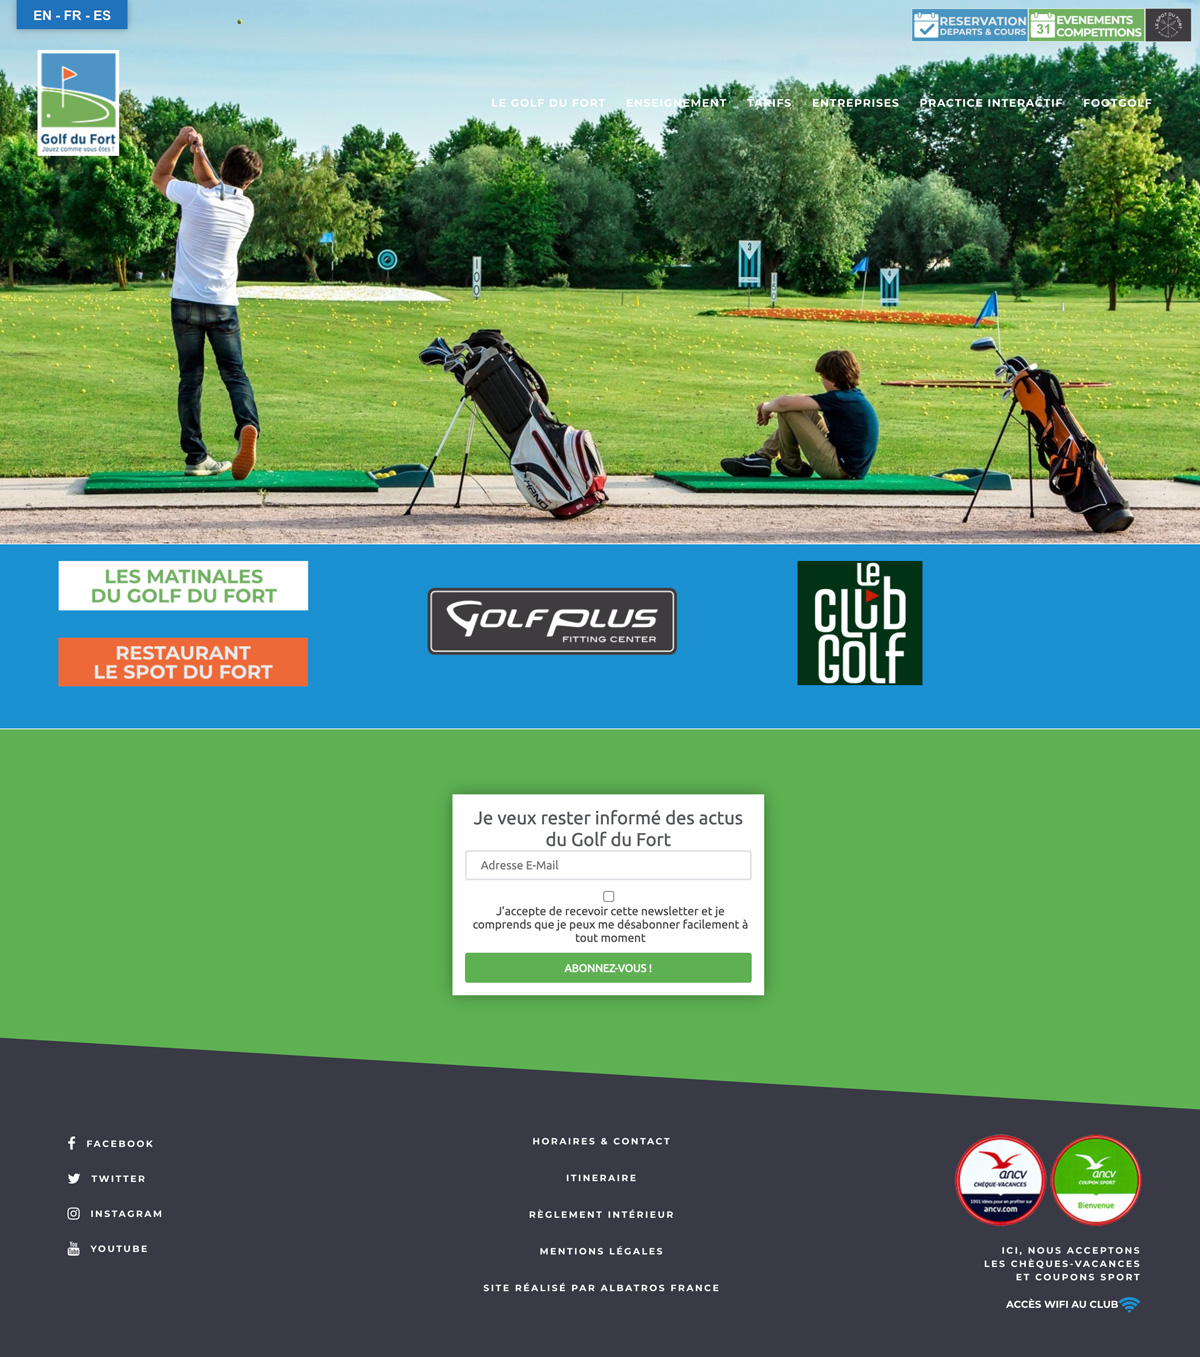 rdsc golf du fort website screenshot